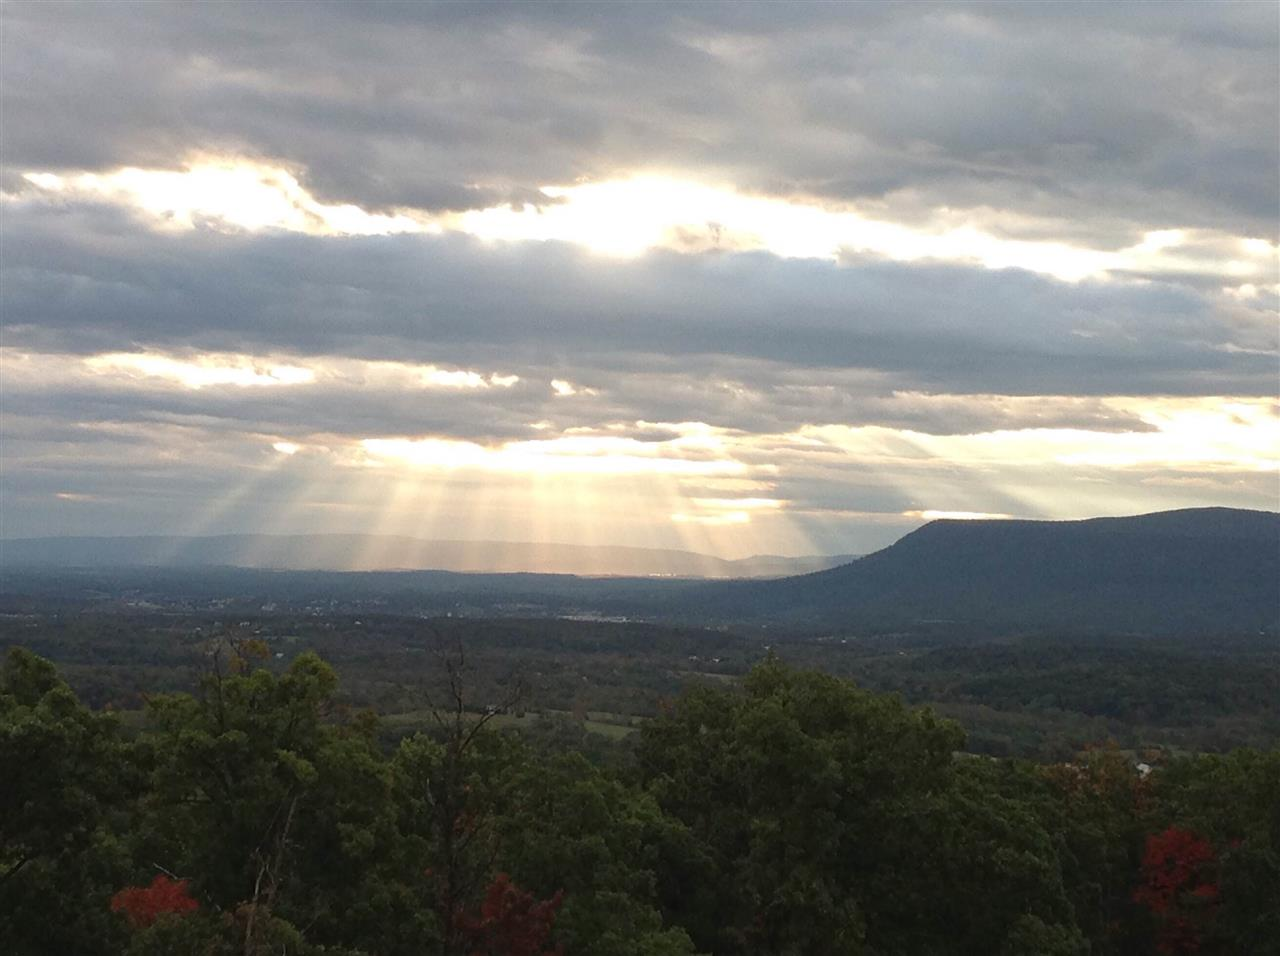 Beautiful View of the Valley.  Taken in Shenandoah Valley, VA and the mountains are Appalachian Mountains